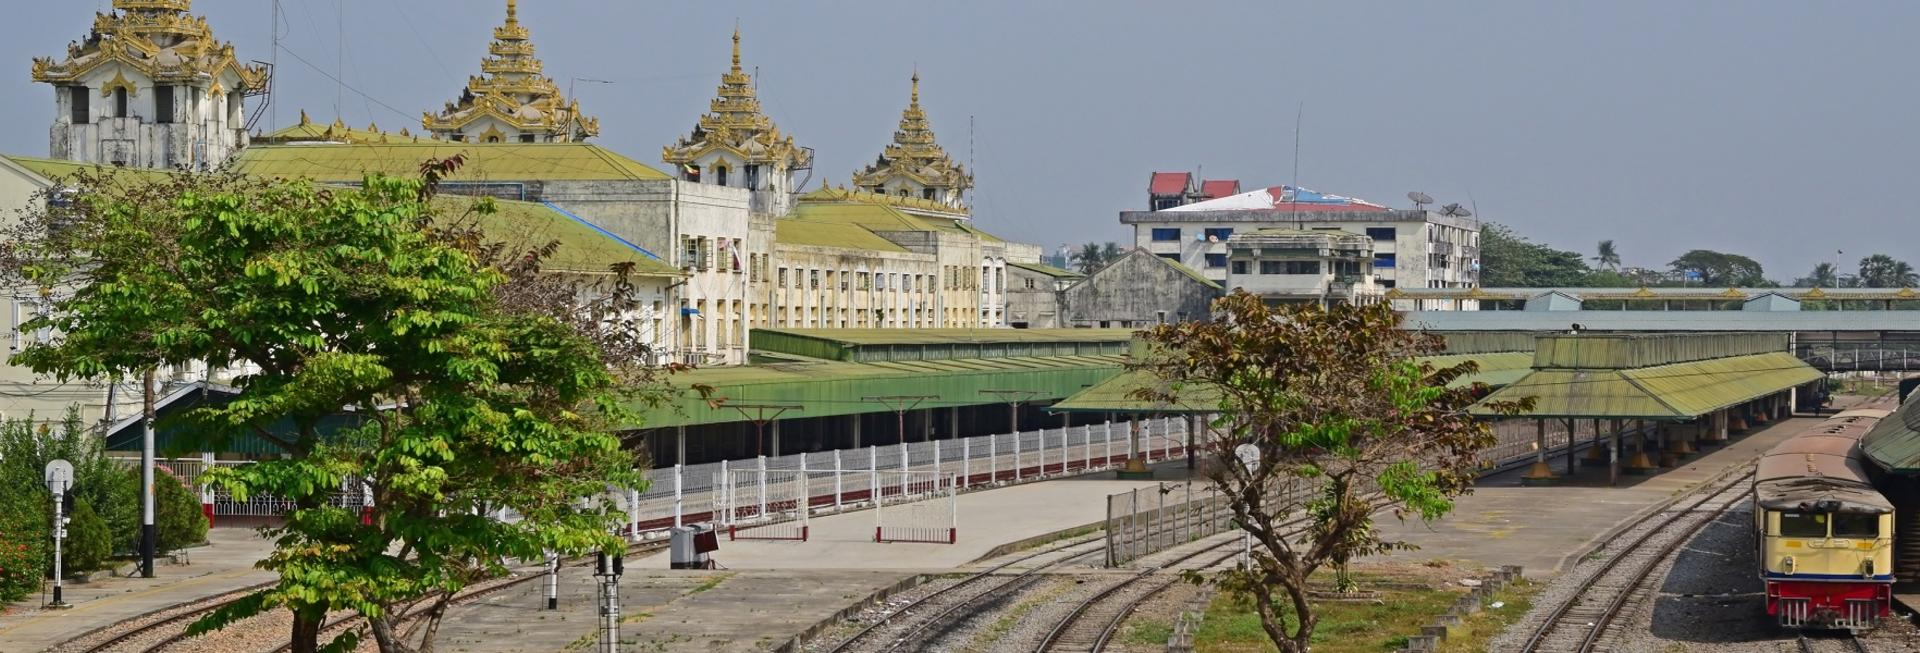 Yangon Circular Line Train